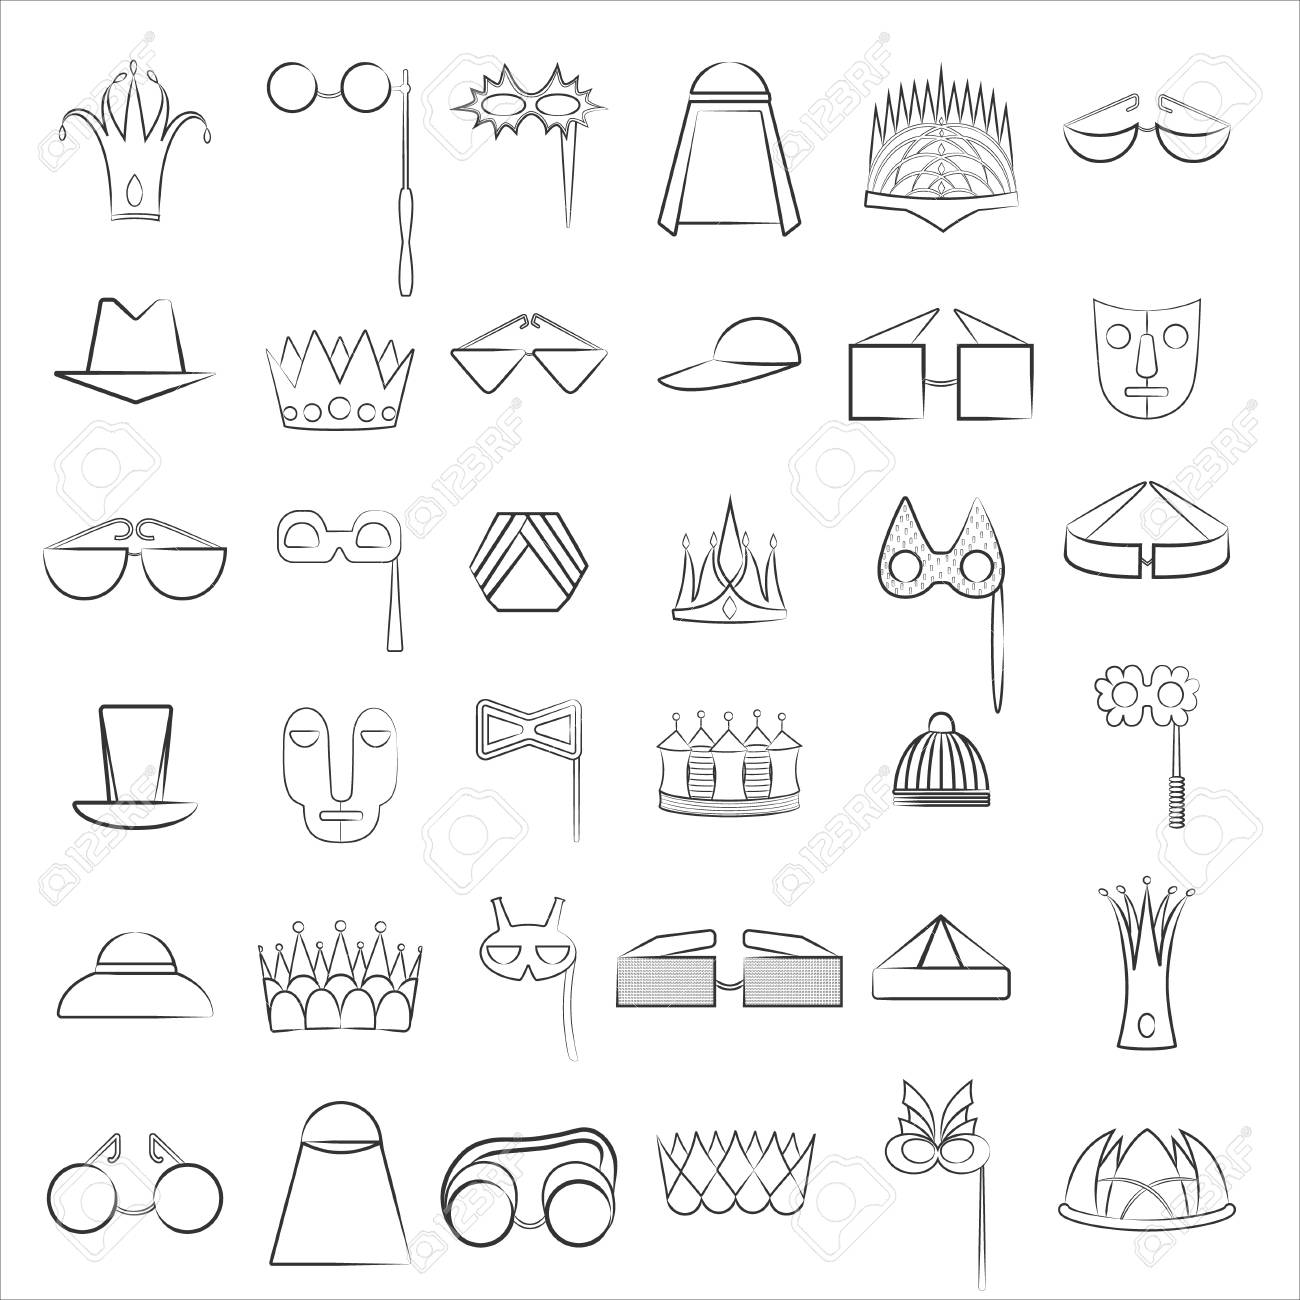 Set with Lined Icons of Diverse Accessories - 110643093